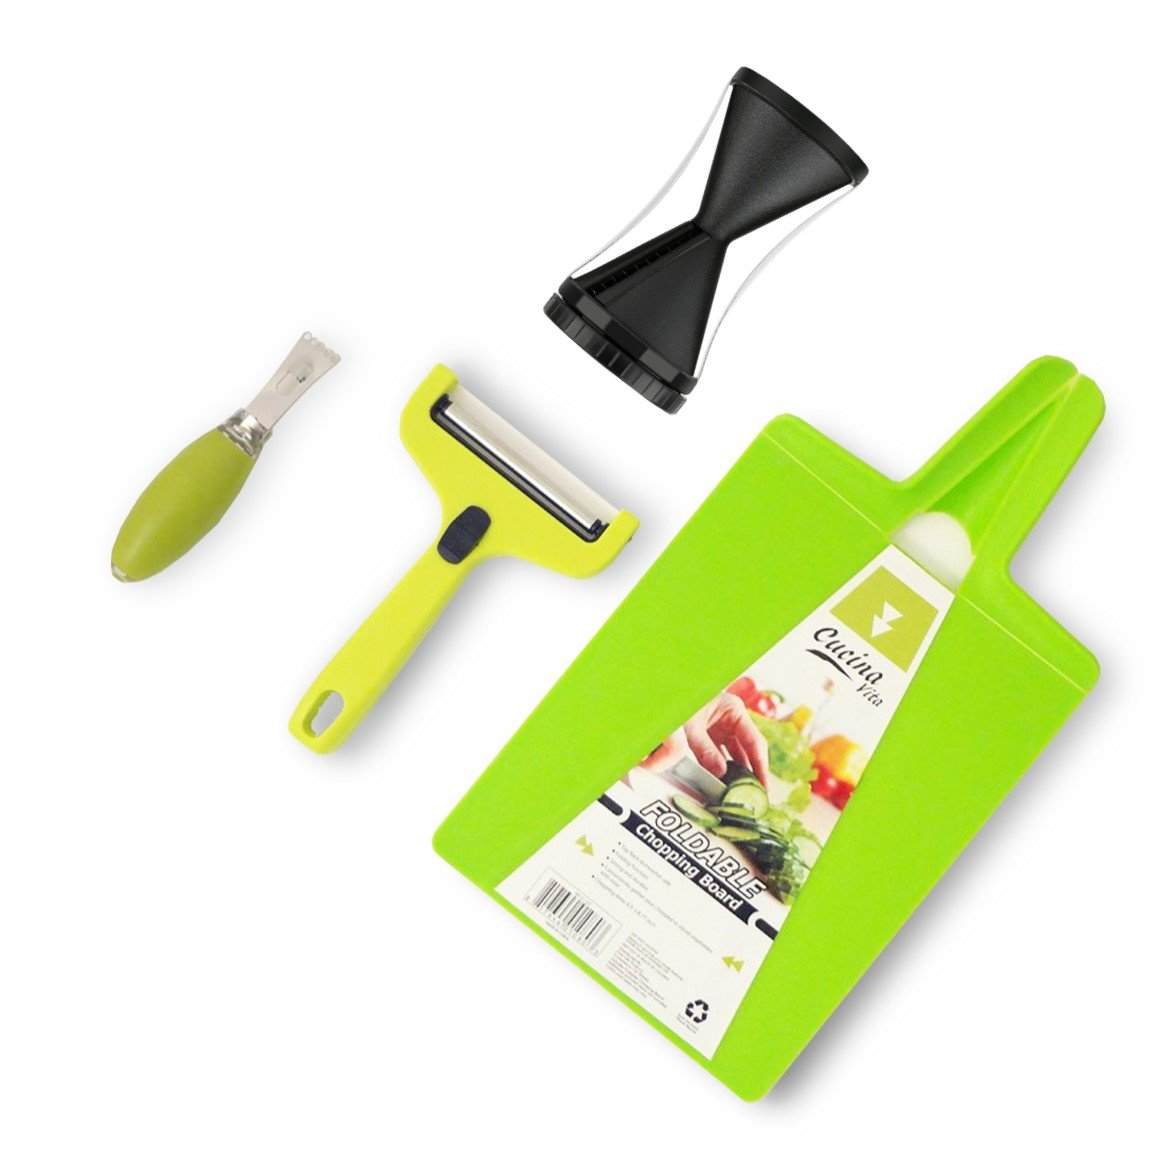 Top Vegetable Spiraler Cutter Slicer Small Green Folding Cutting Board Cheese Zester Kitchen Essential Birthday Present Idea Family Mom Dad Grandpa Brother Chef Cook Set Best Stocking Stuffer College by JCCentral (Image #1)